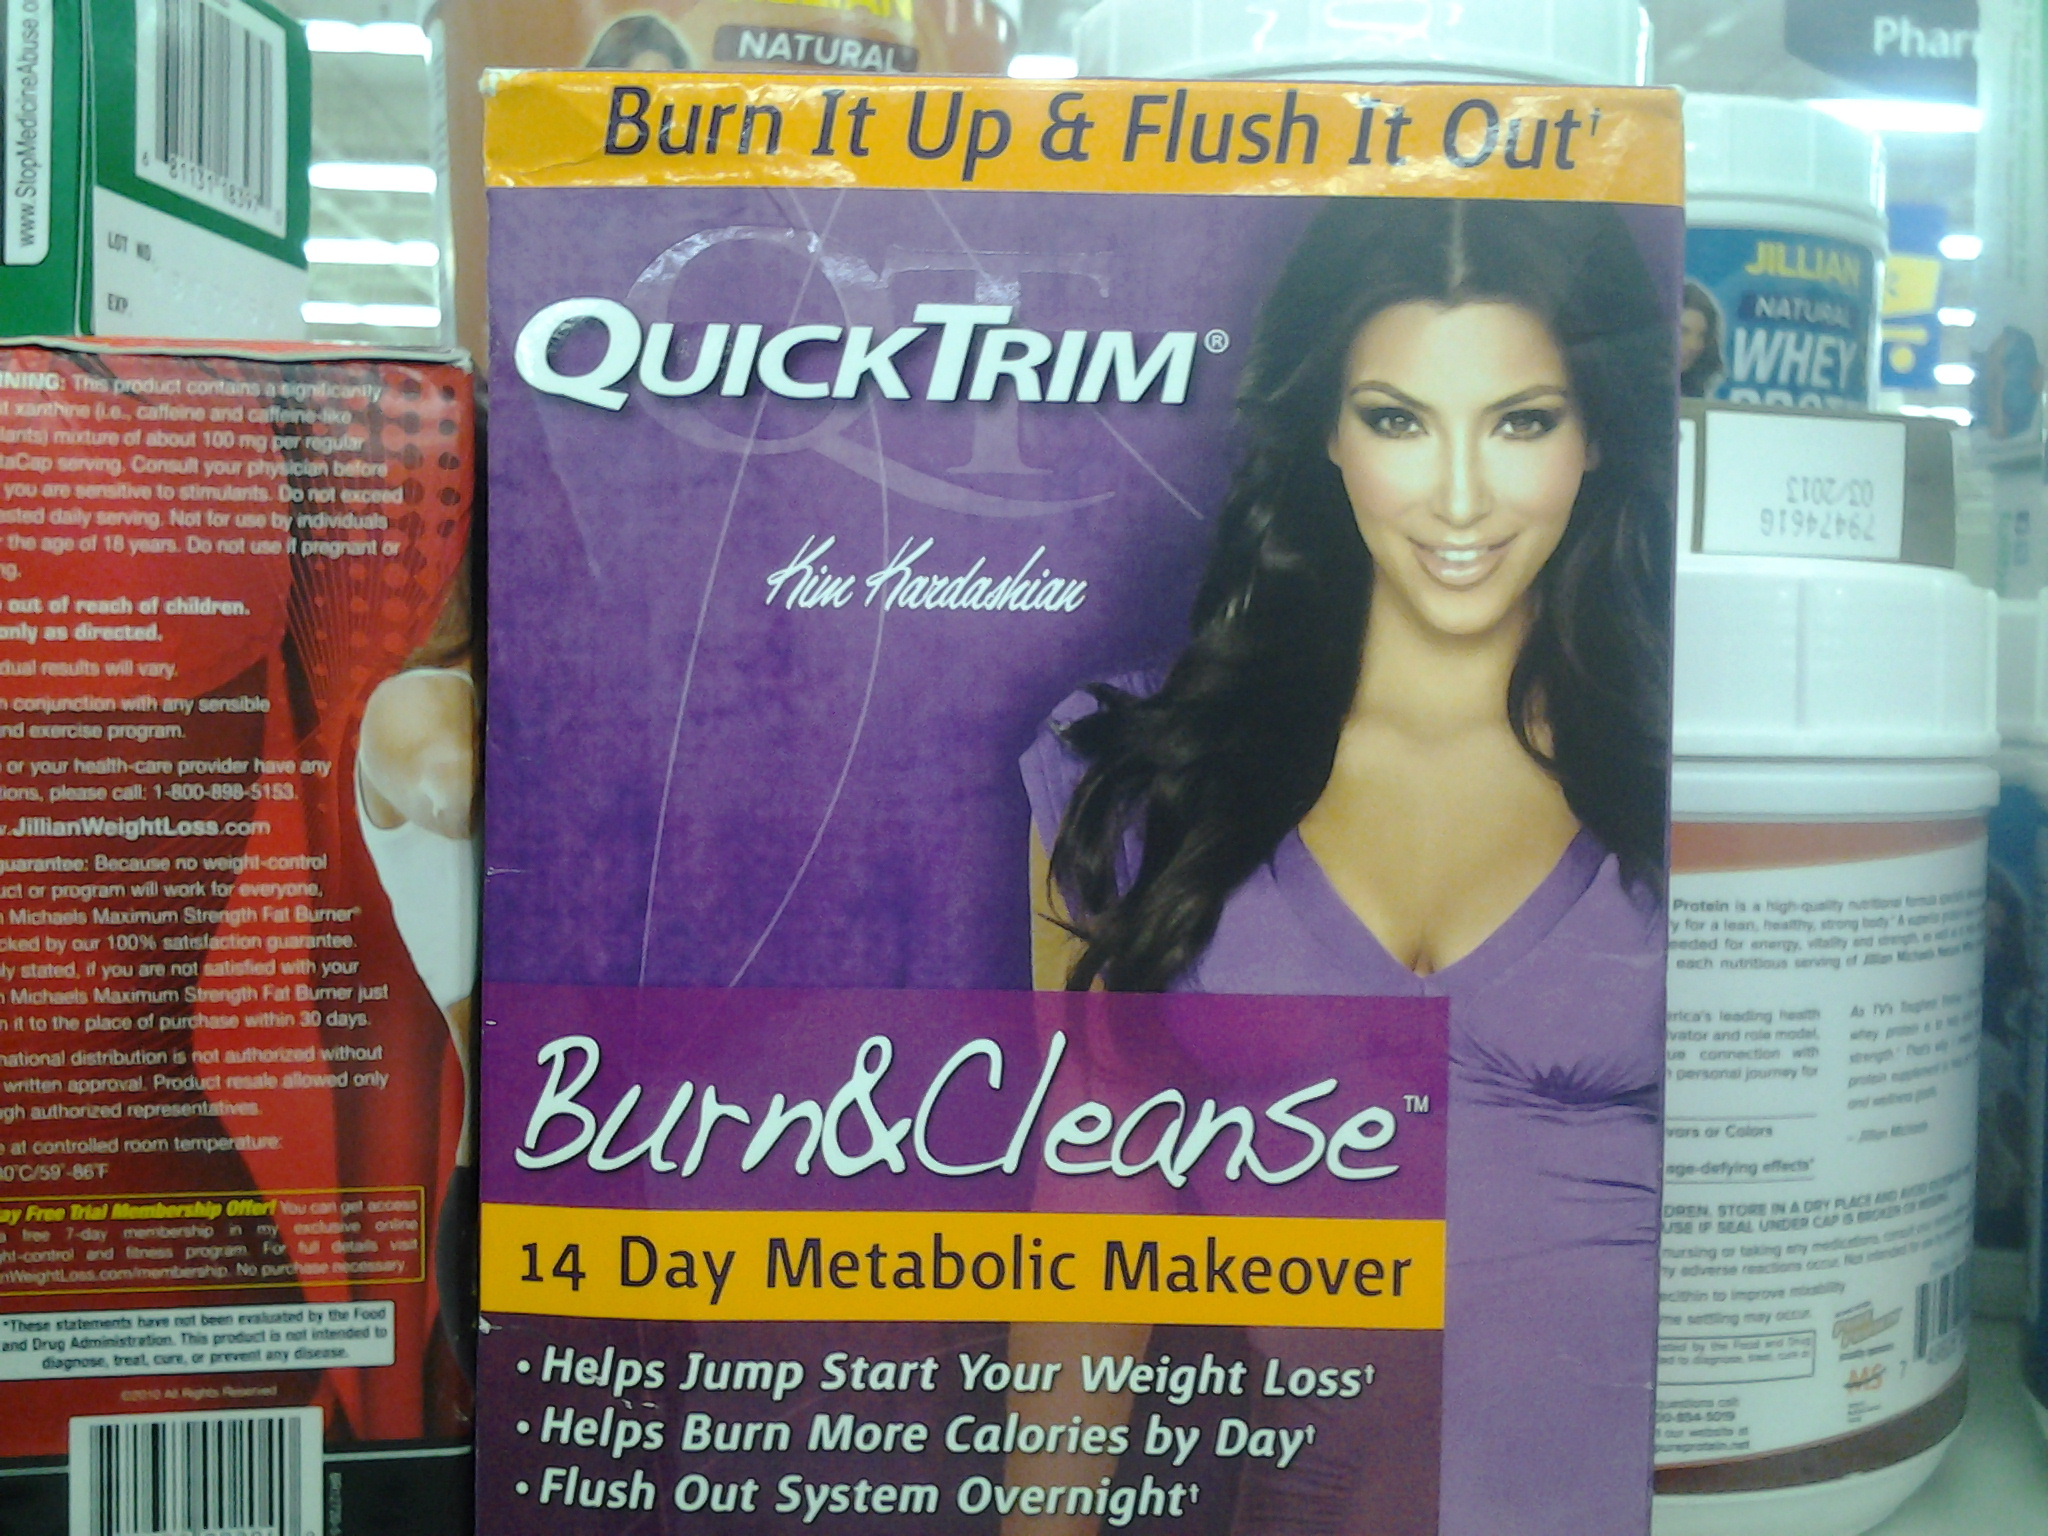 Quicktrim Does It Help Weight Loss Review Of Ingredients And